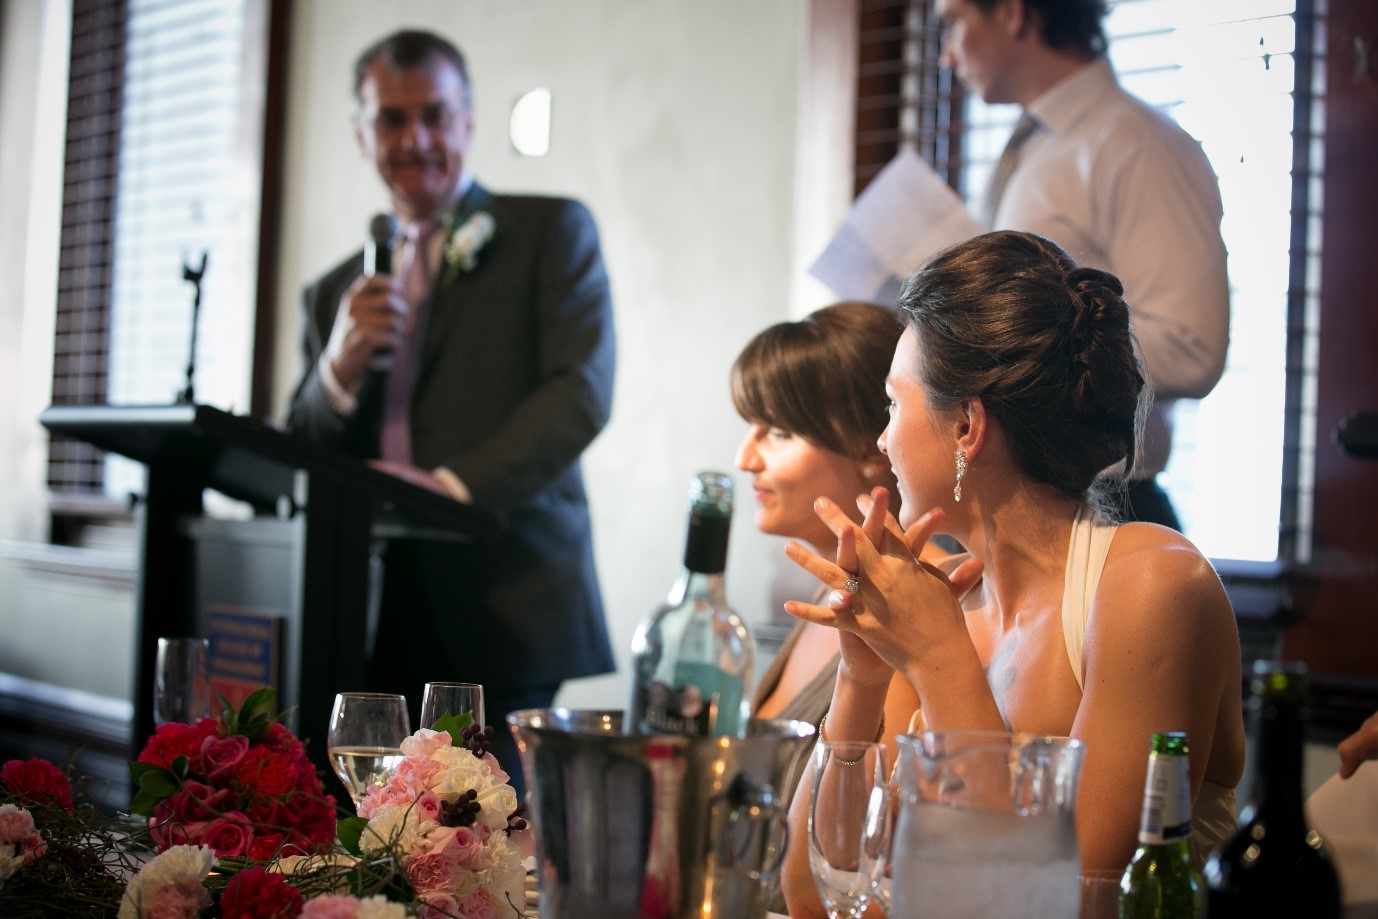 Wedding speech, wedding speech writer, father of the bride speech